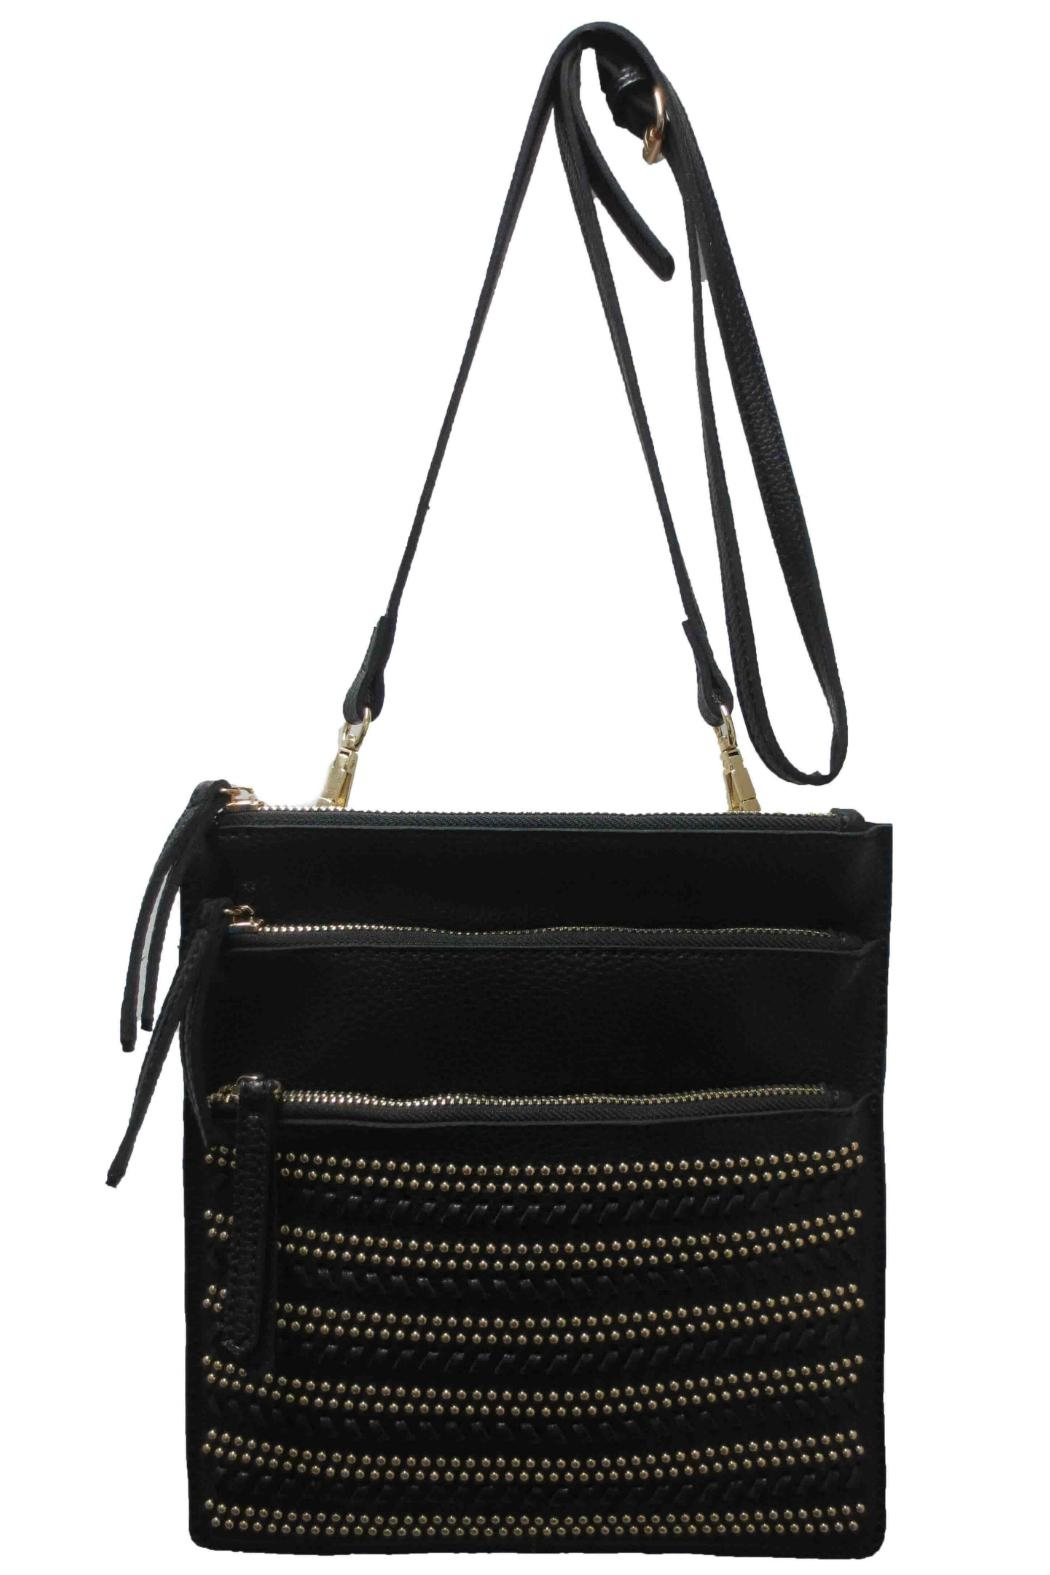 Sondra Roberts Studded Messenger Bag - Main Image